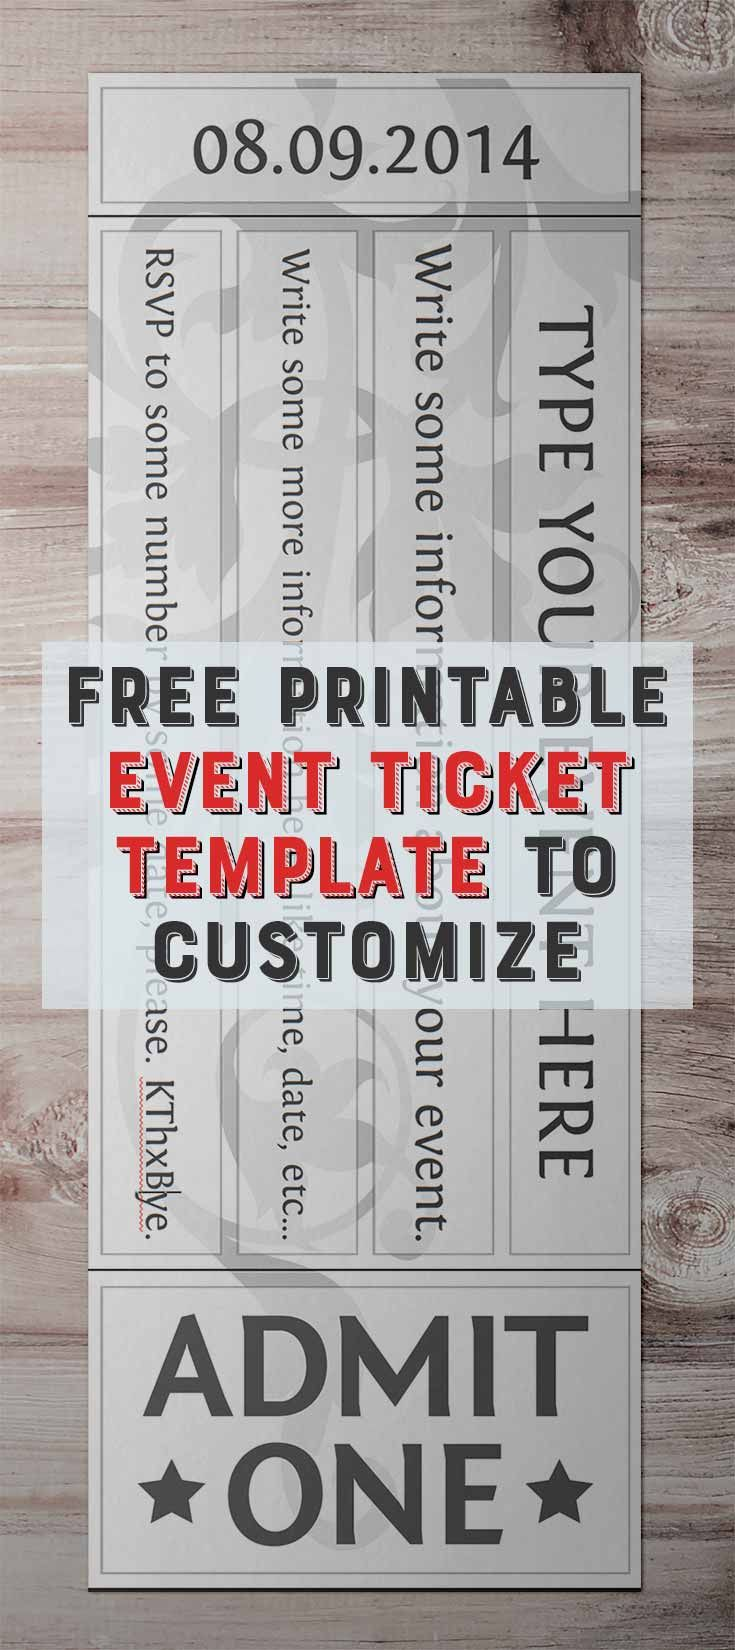 Free Printable Event Ticket Template To Customize Event Ticket Template Ticket Template Ticket Template Free